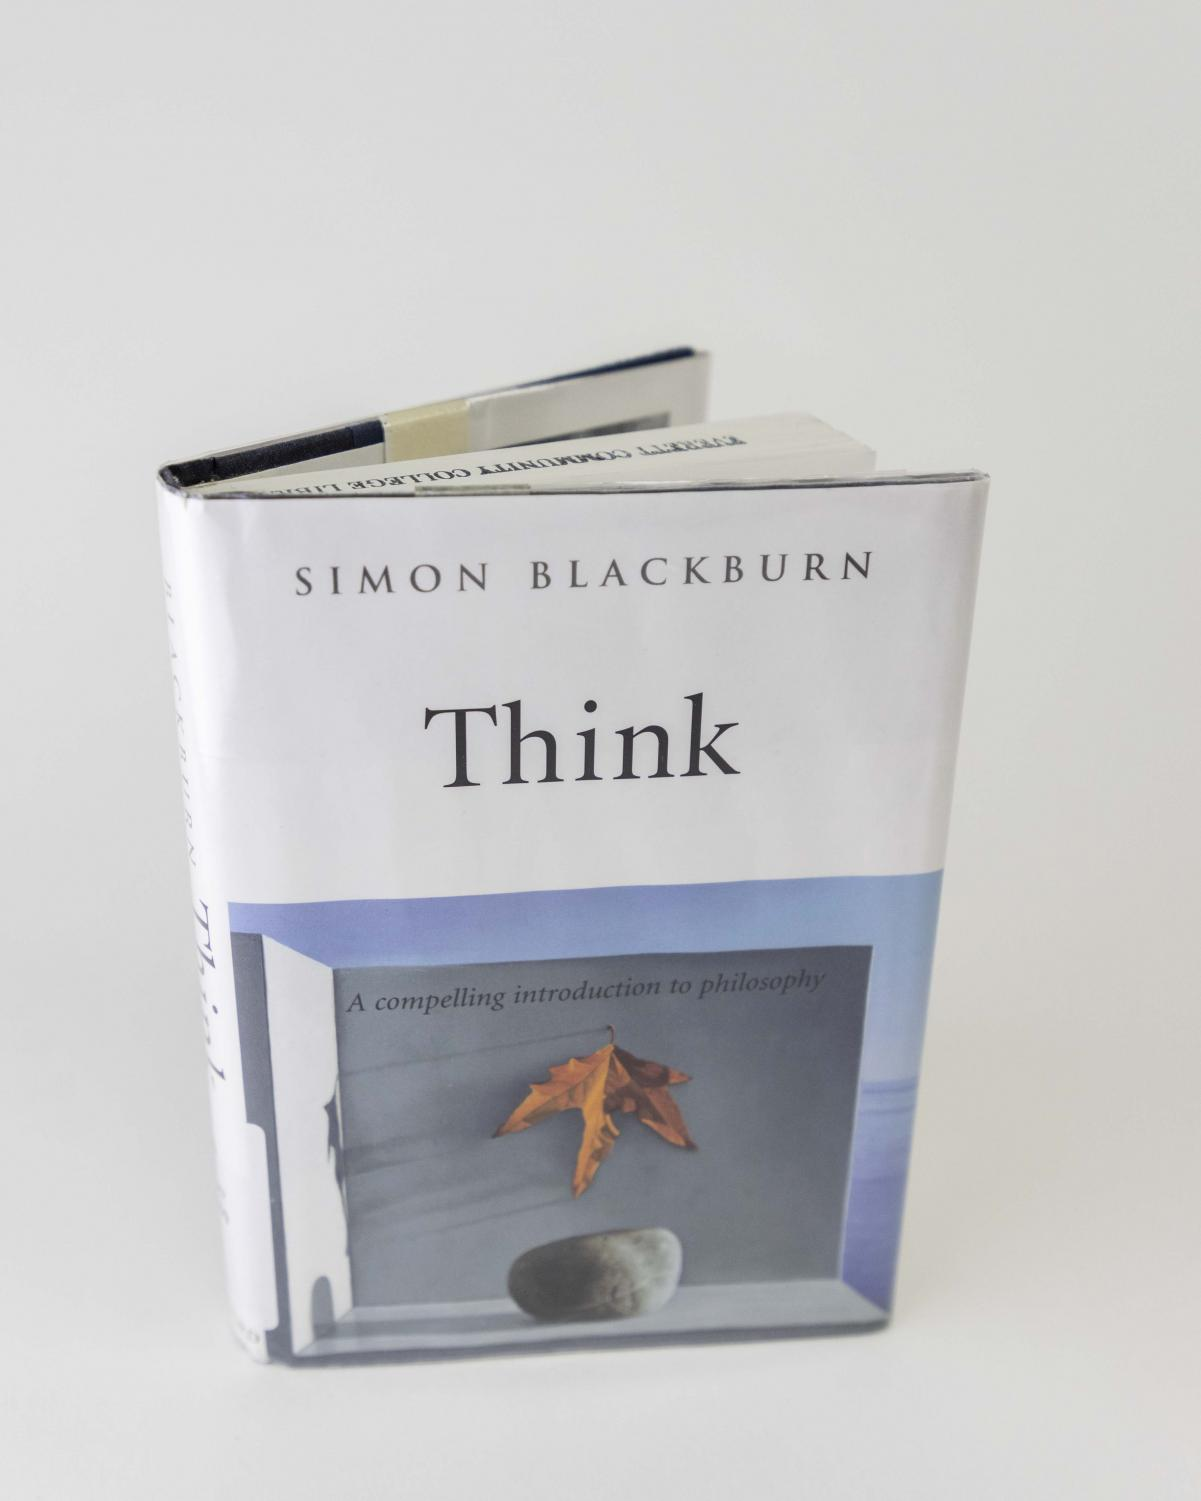 """Think"" by Simon Blackburn is an example of a book that could be an introduction to philosophy."